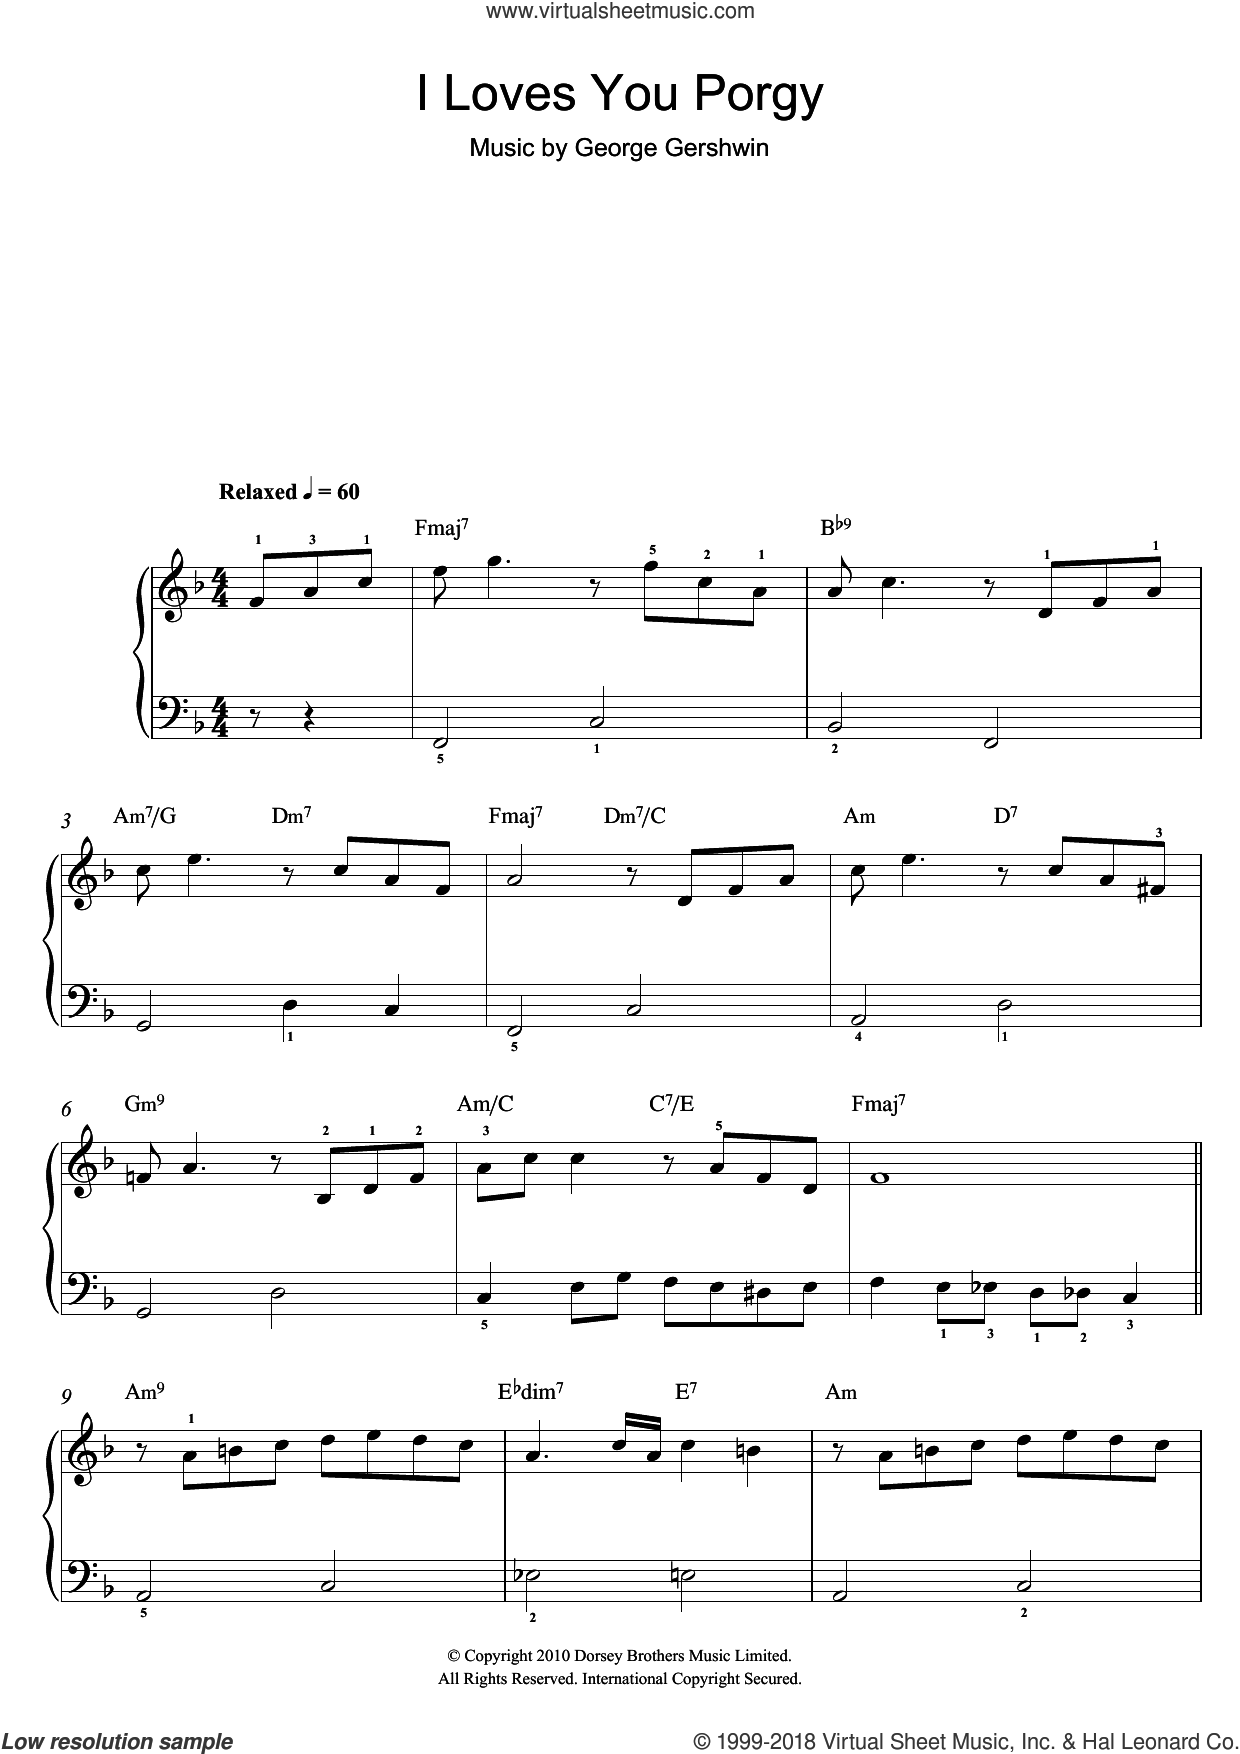 I Loves You, Porgy (From Porgy And Bess) sheet music for piano solo by George Gershwin, easy skill level